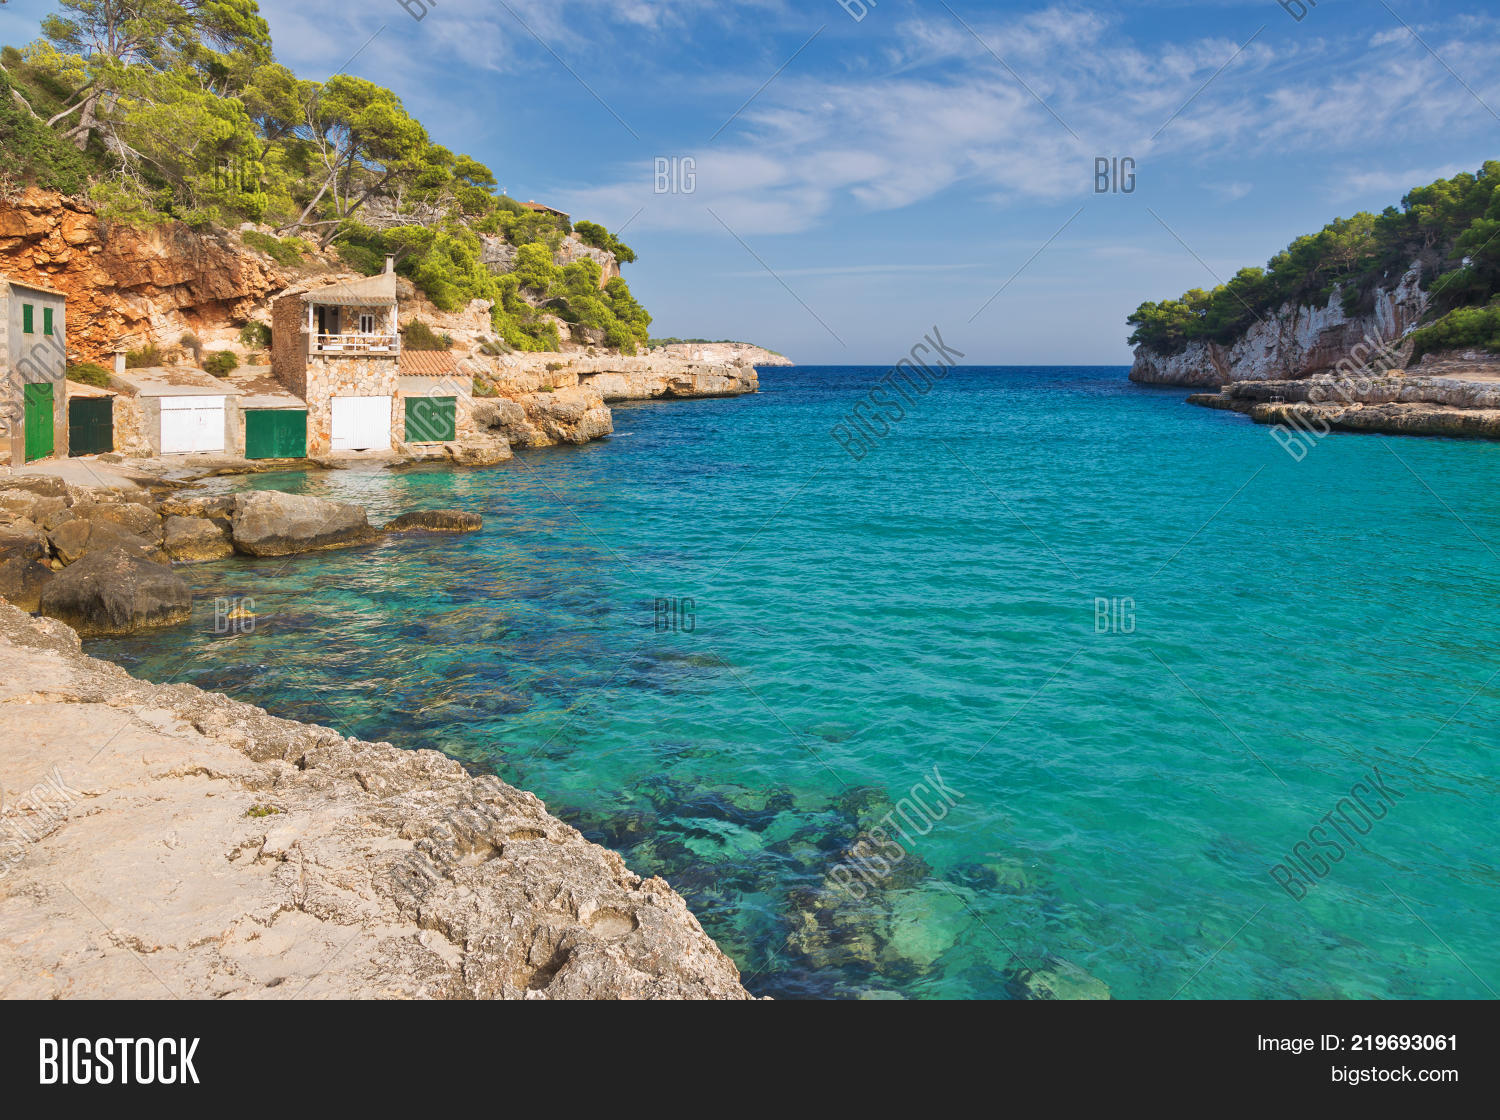 baleares,balearic,bay,beach,beautiful,blue,cala,coast,coastline,destination,europe,green,holiday,idyllic,island,landscape,llombards,mallorca,mediterranean,mountain,nature,ocean,pine,recreation,rock,sand,santanyi,scene,scenery,scenic,sea,seascape,seaside,shore,sky,spain,spanish,stone,summer,sun,sunny,tourism,tranquil,travel,tree,tropical,turquoise,vacation,view,water